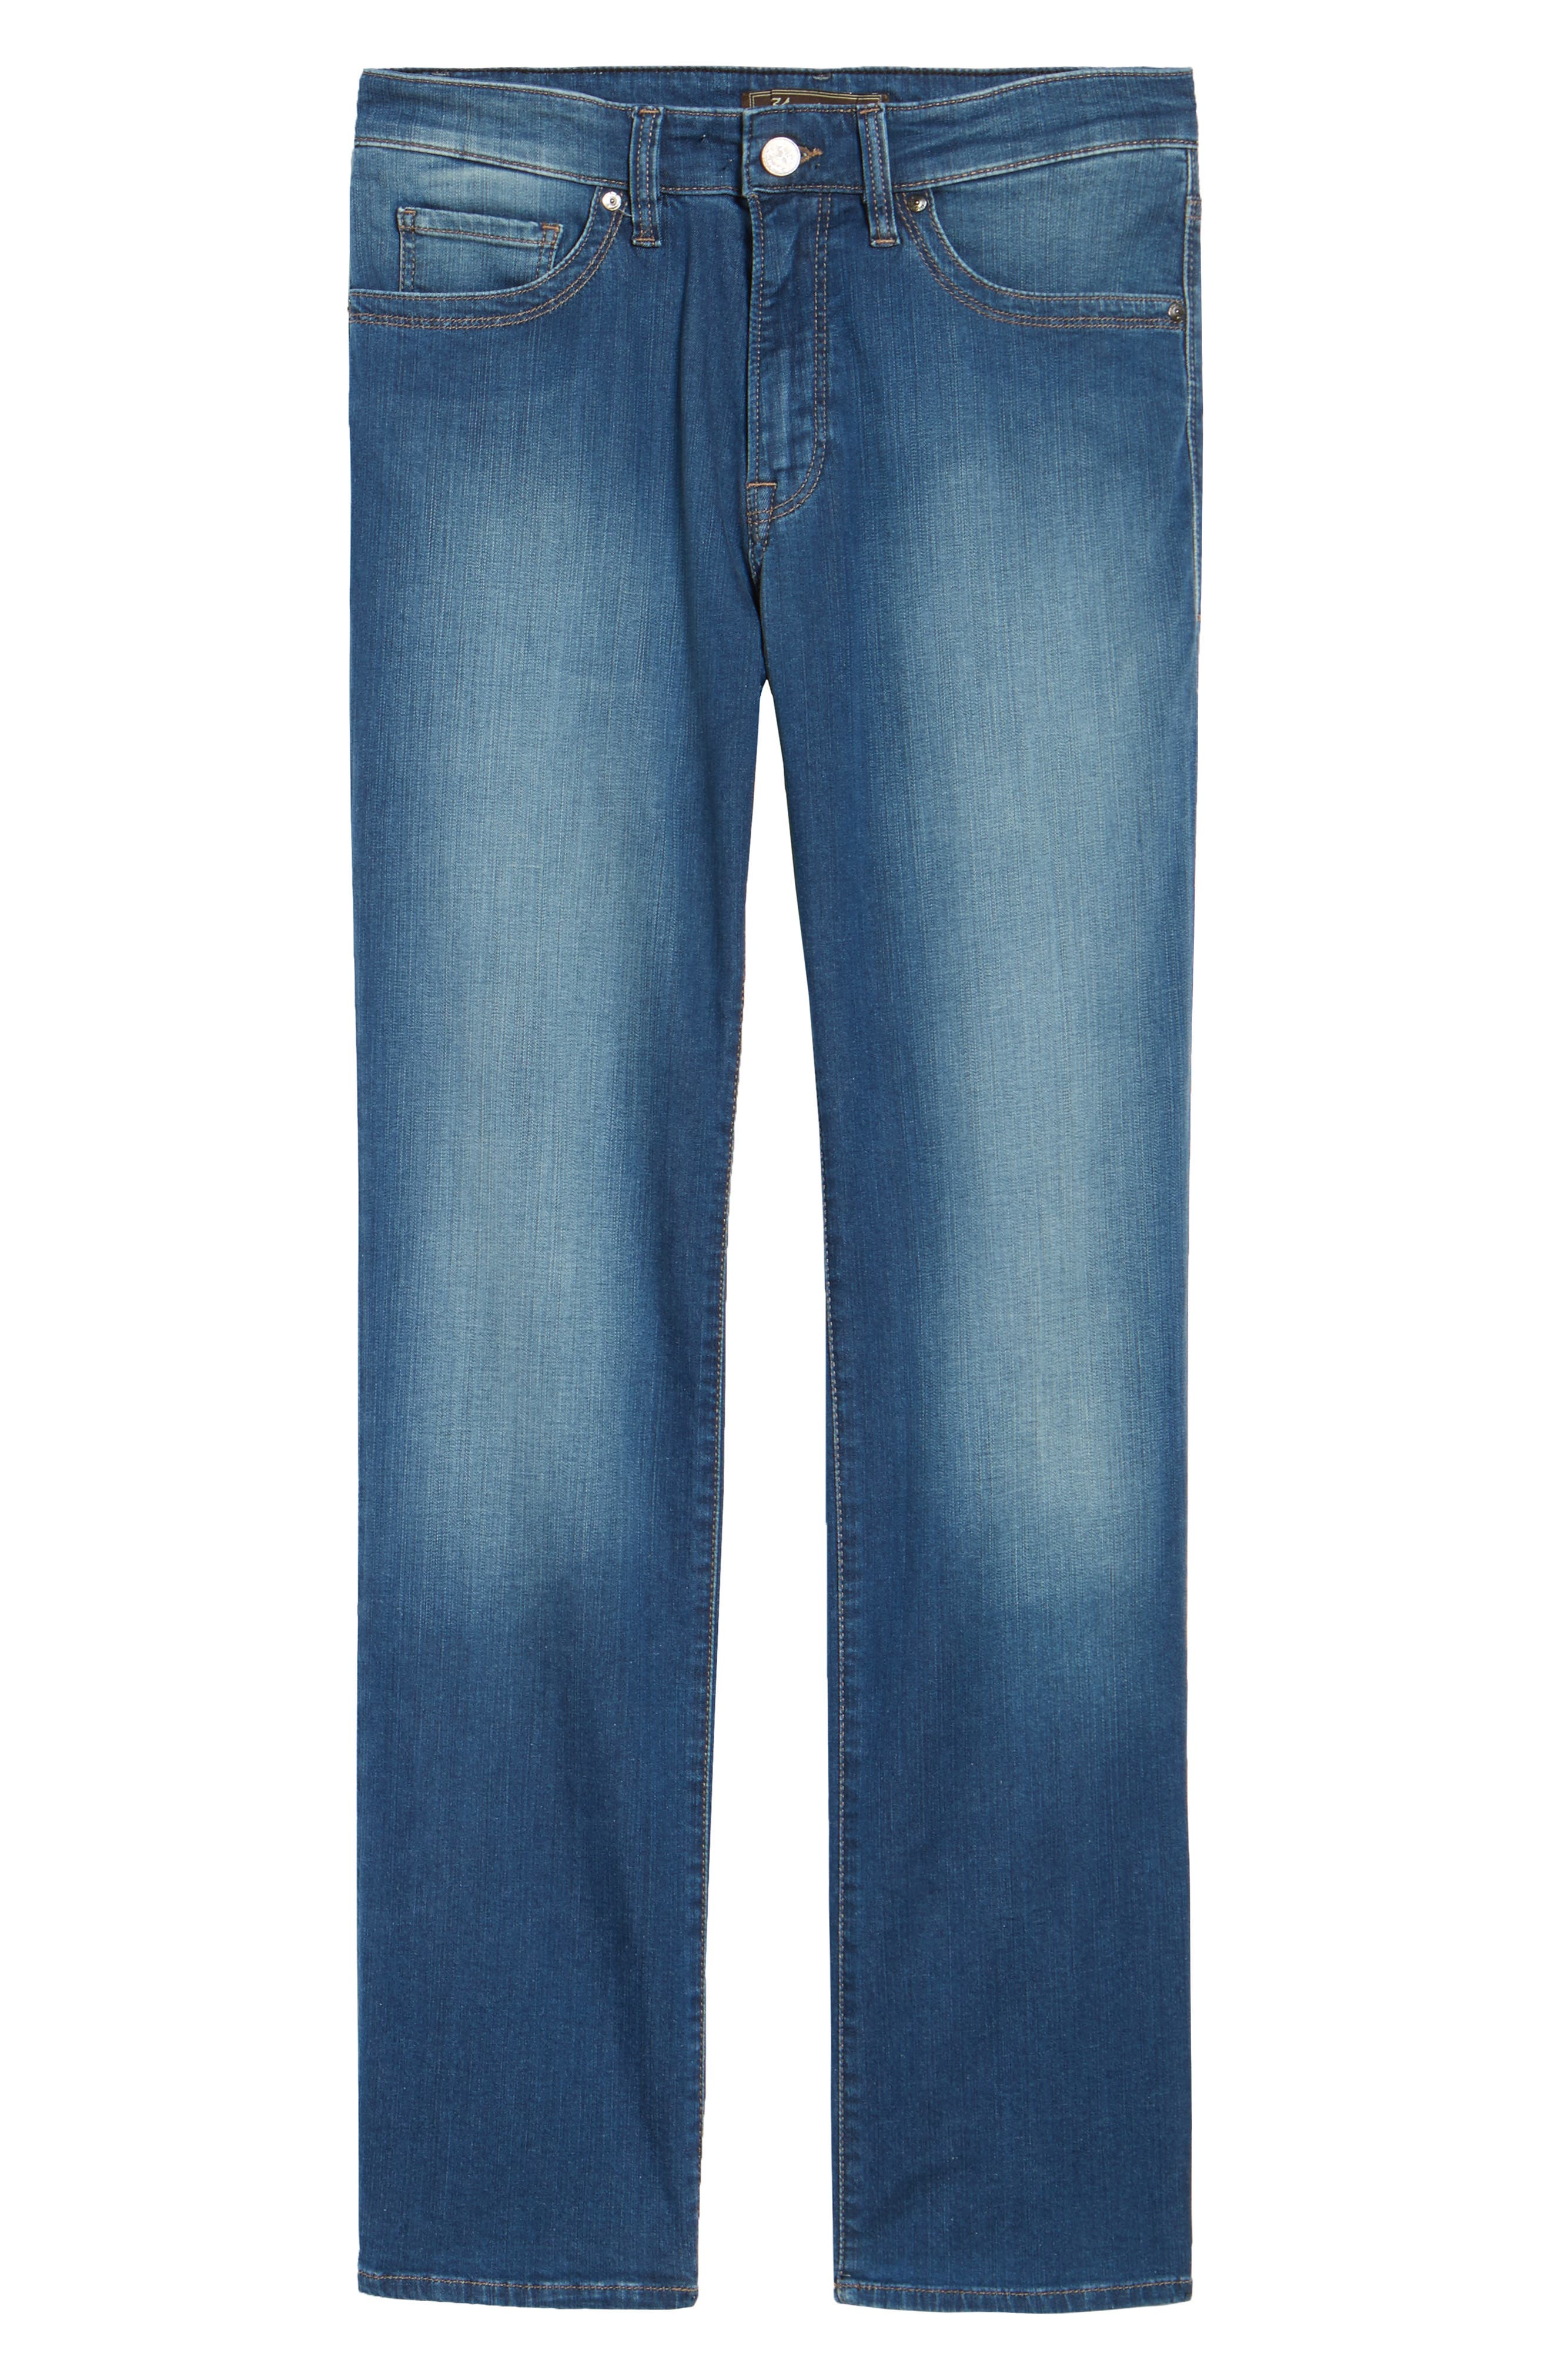 'Charisma' Classic Relaxed Fit Jeans,                             Alternate thumbnail 6, color,                             Mid Cashmere